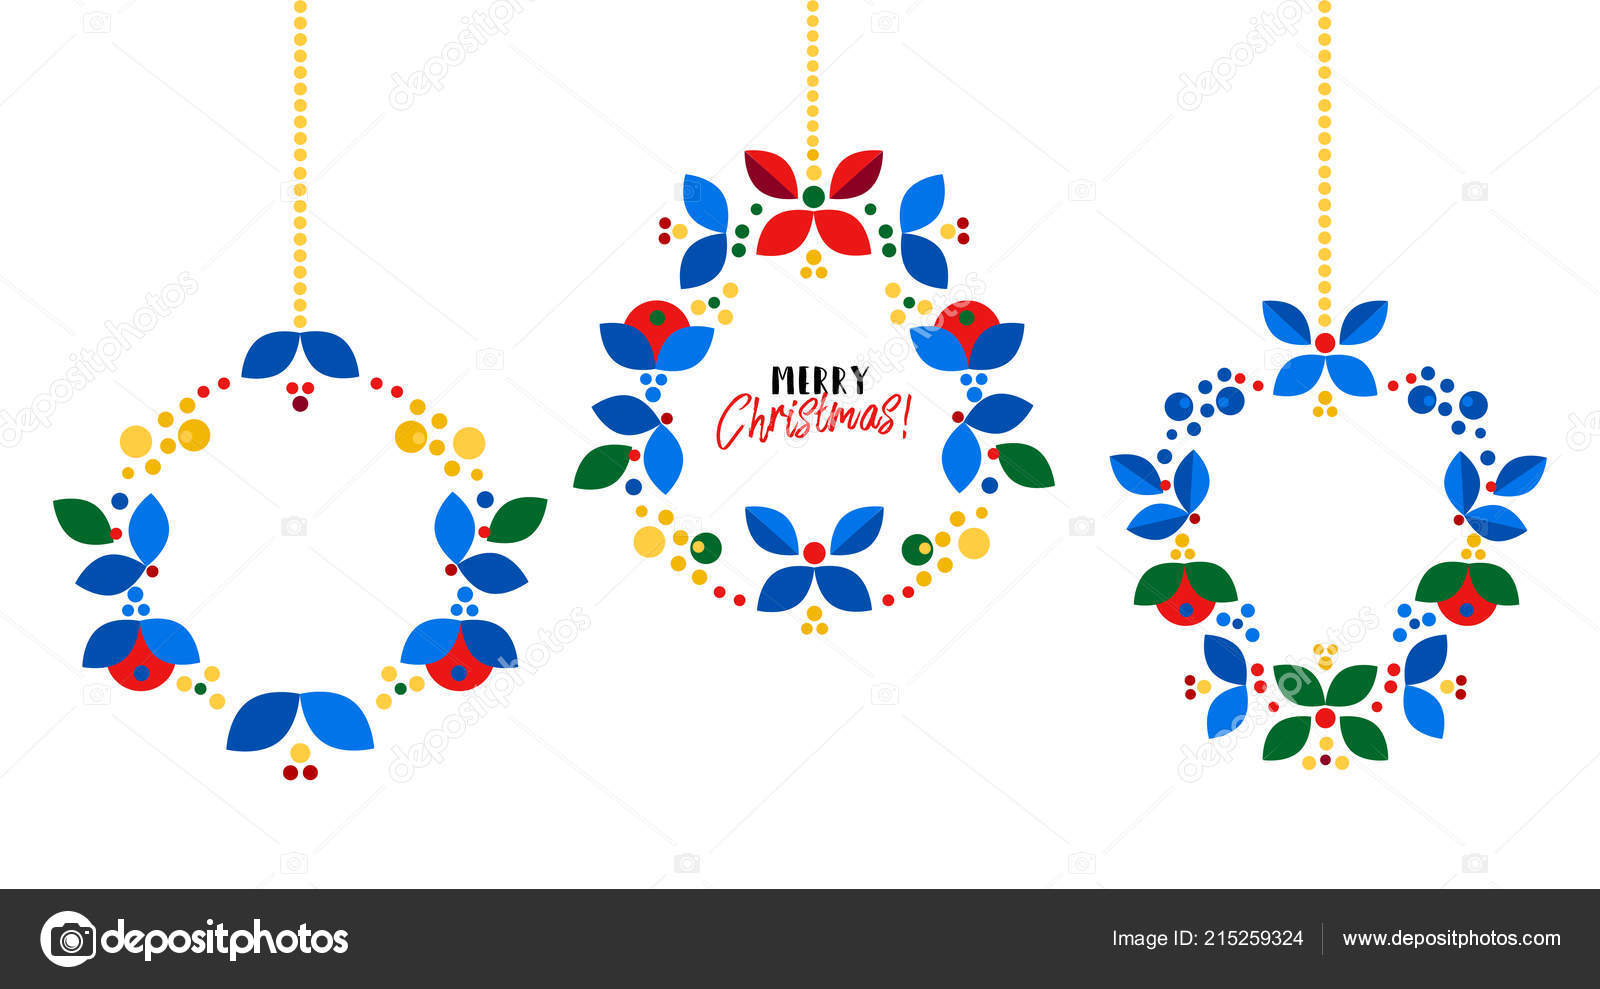 merry christmas happy new year card design abstract flat xmas stock vector